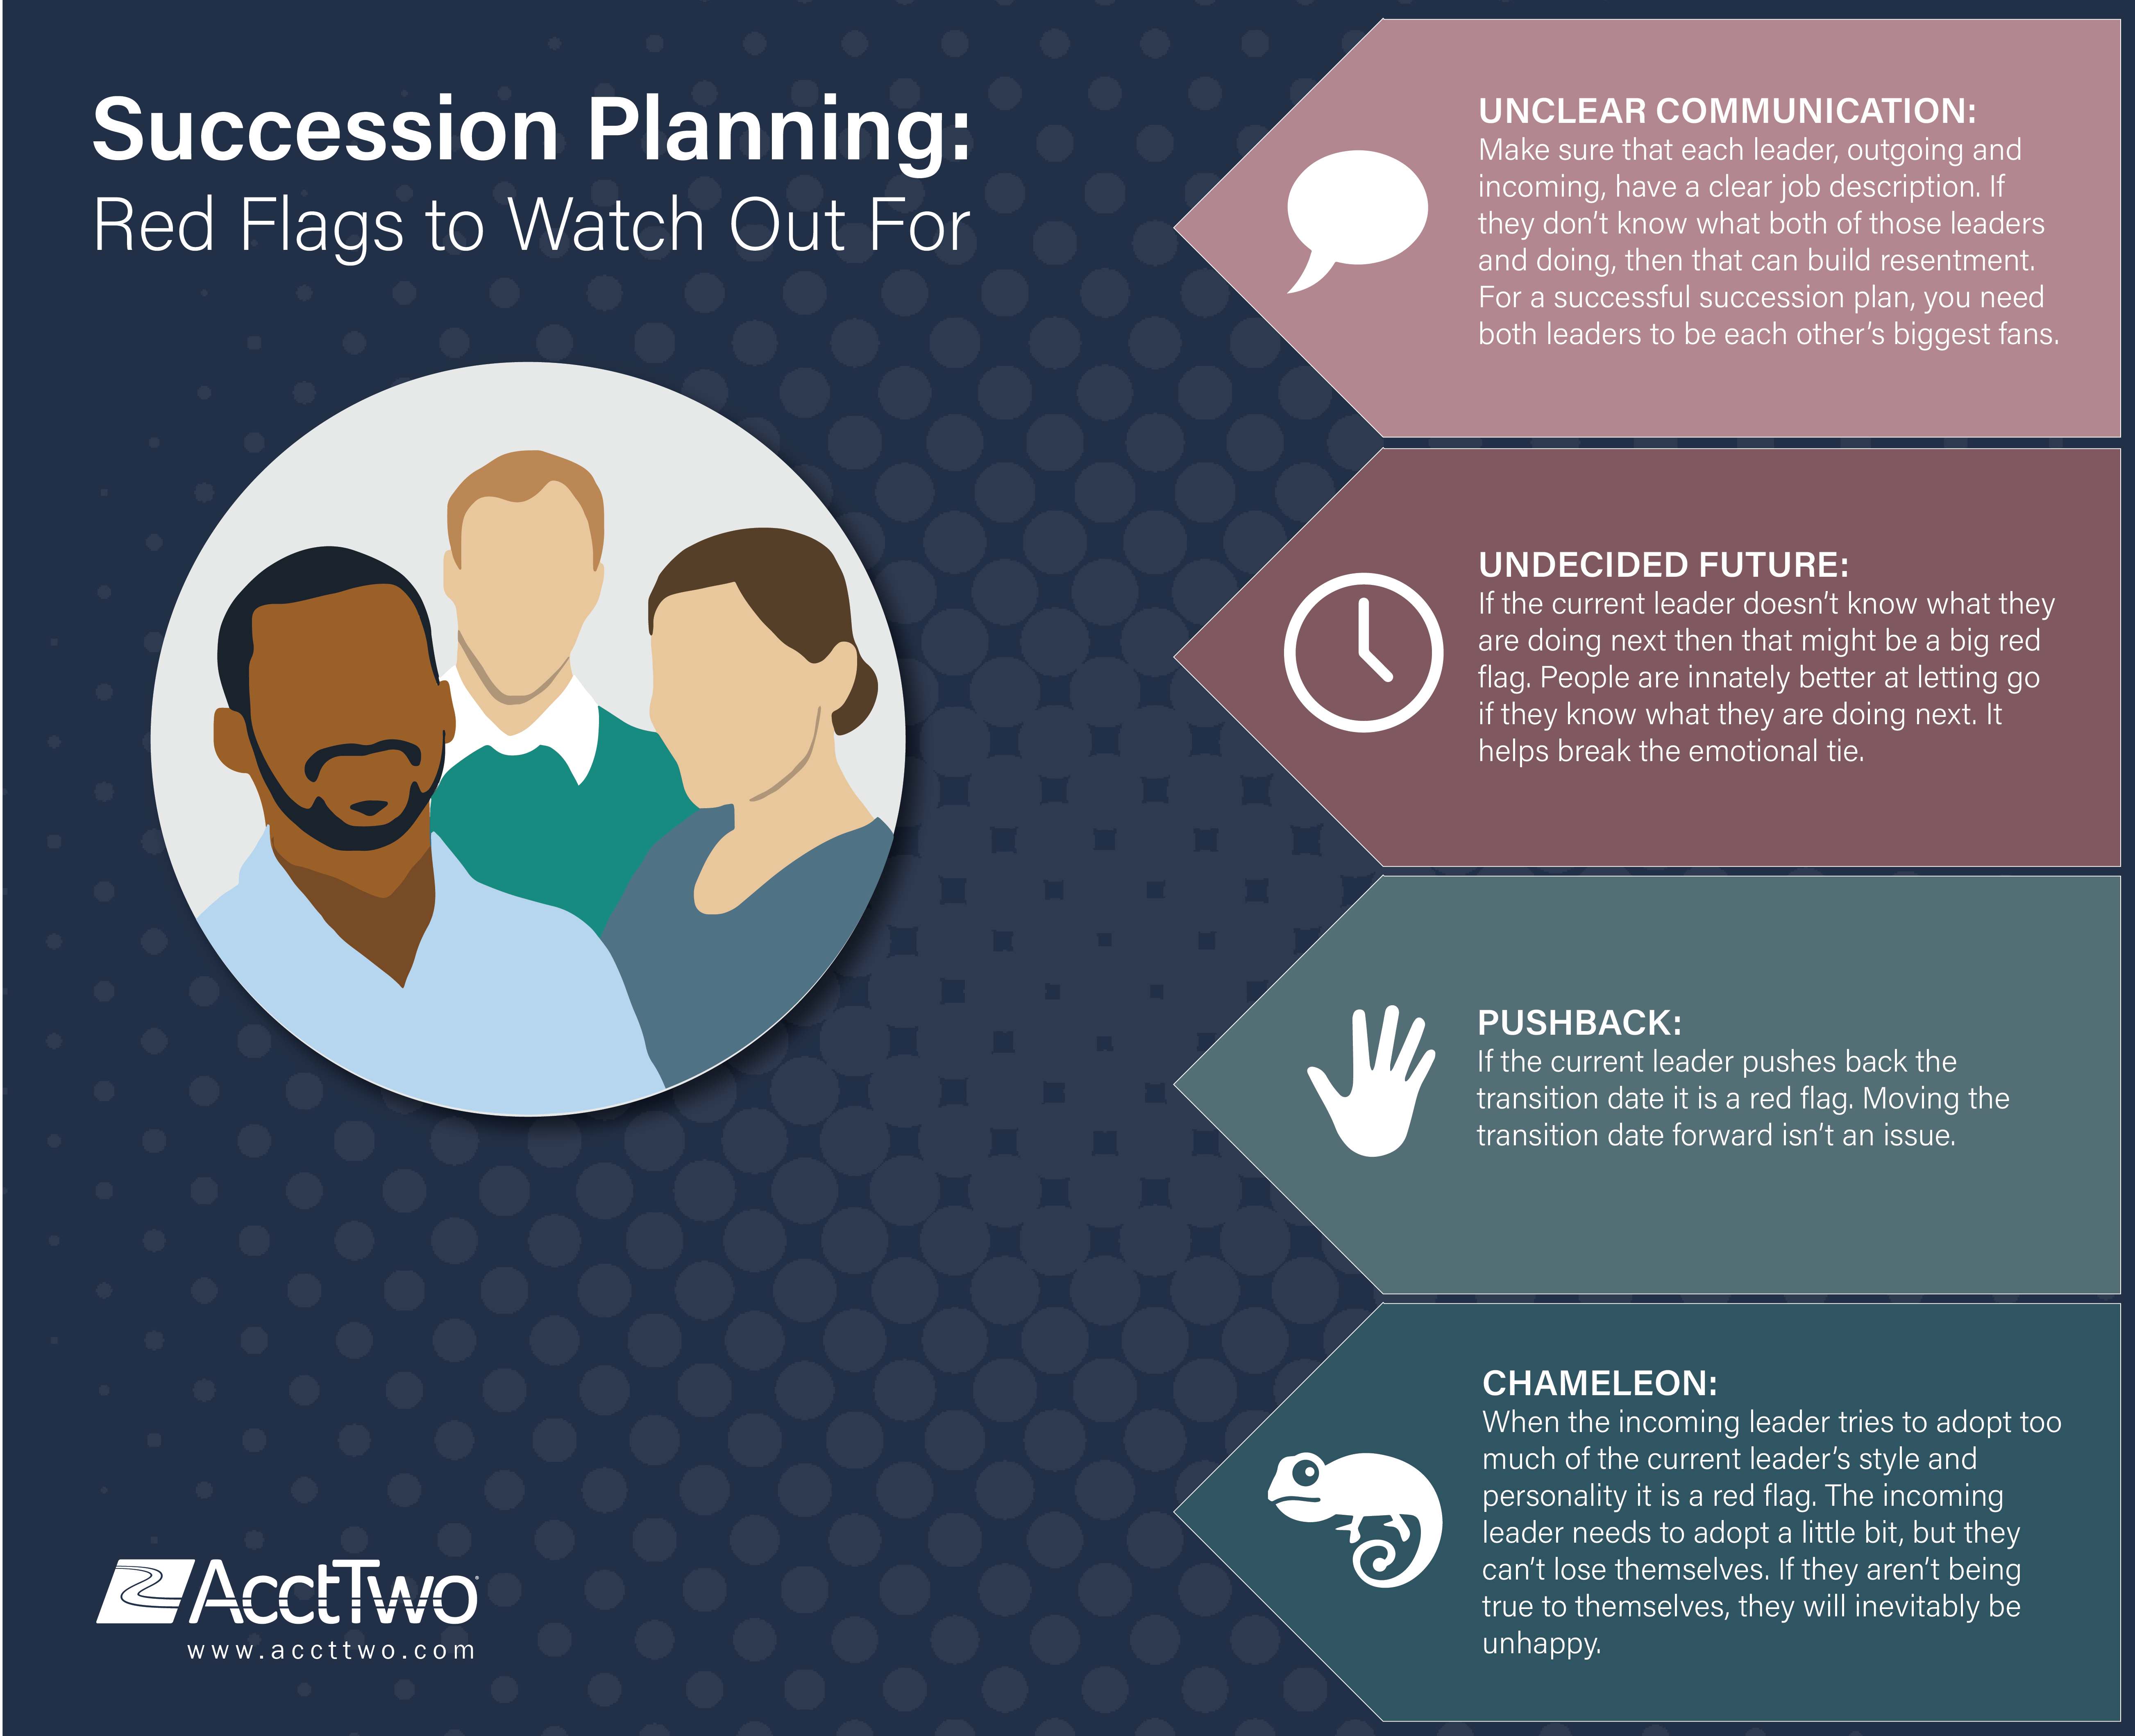 Church Leadership Succession Planning: Red Flags to Watch Out For